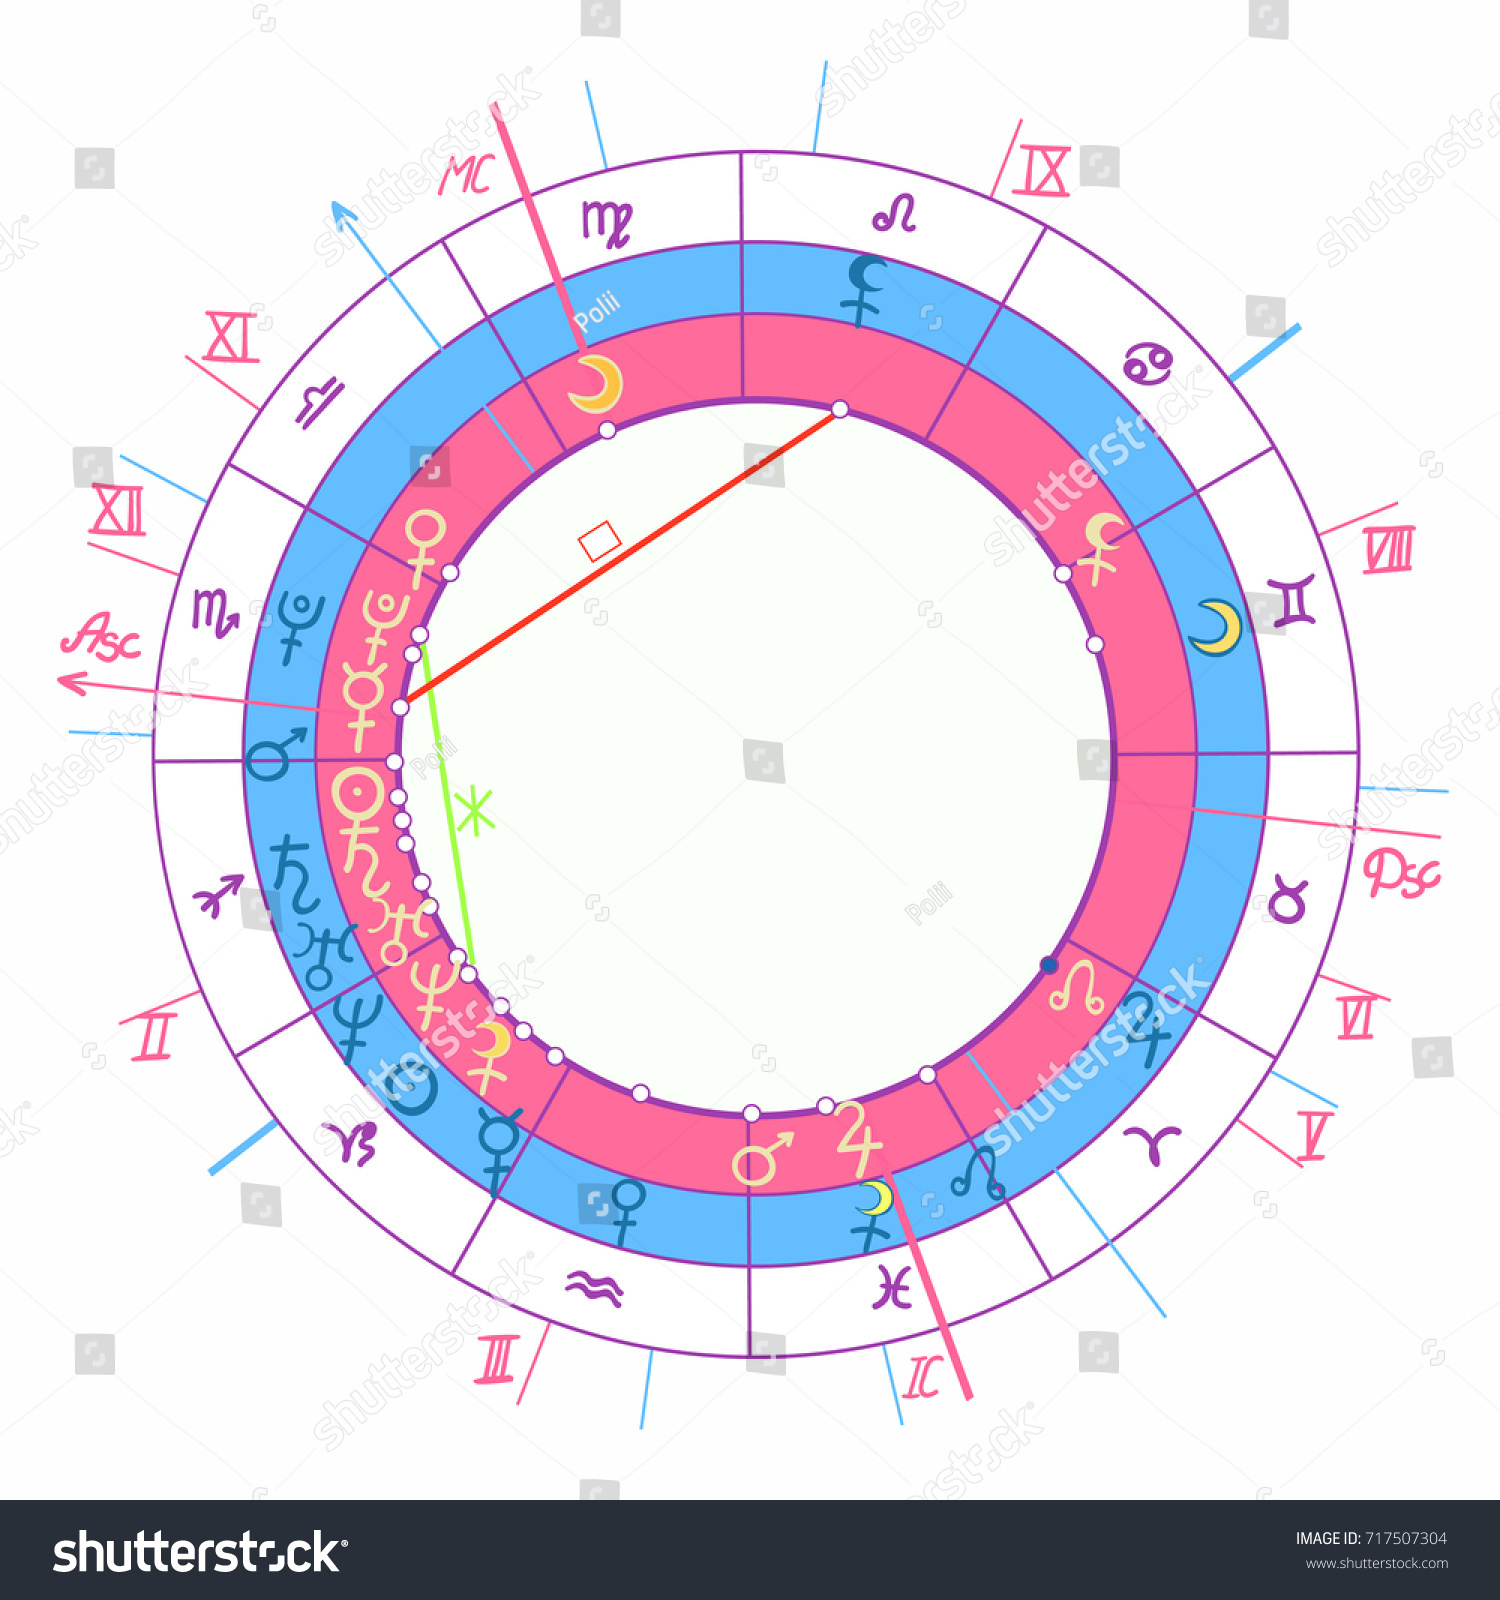 Synastry natal astrological chart zodiac signs stock vector synastry natal astrological chart zodiac signs vector illustration geenschuldenfo Gallery